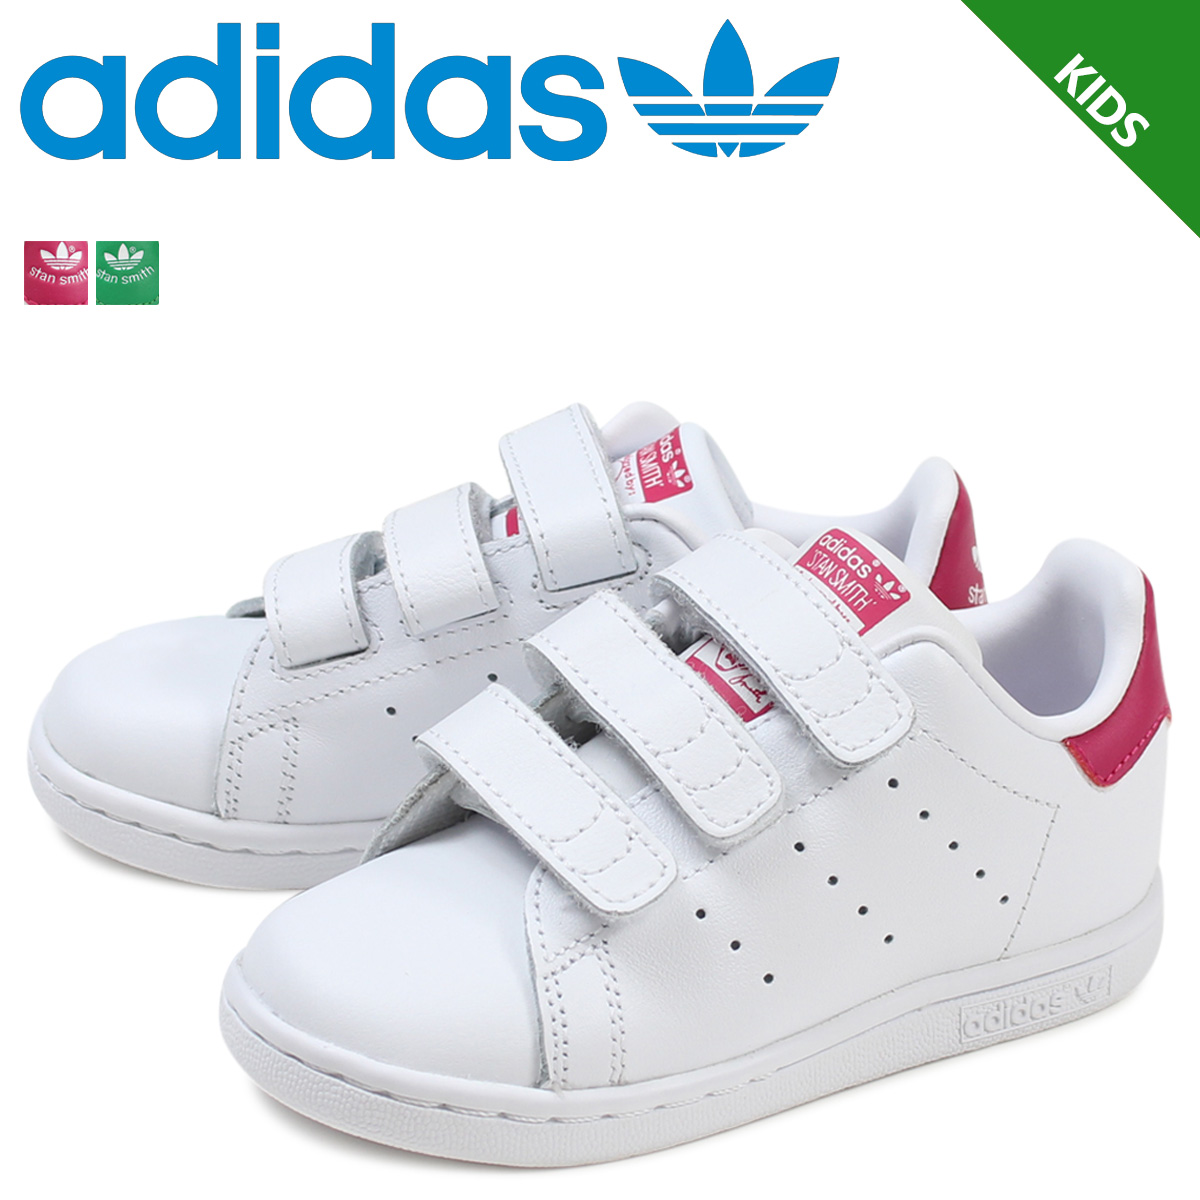 buy adidas stan smith online